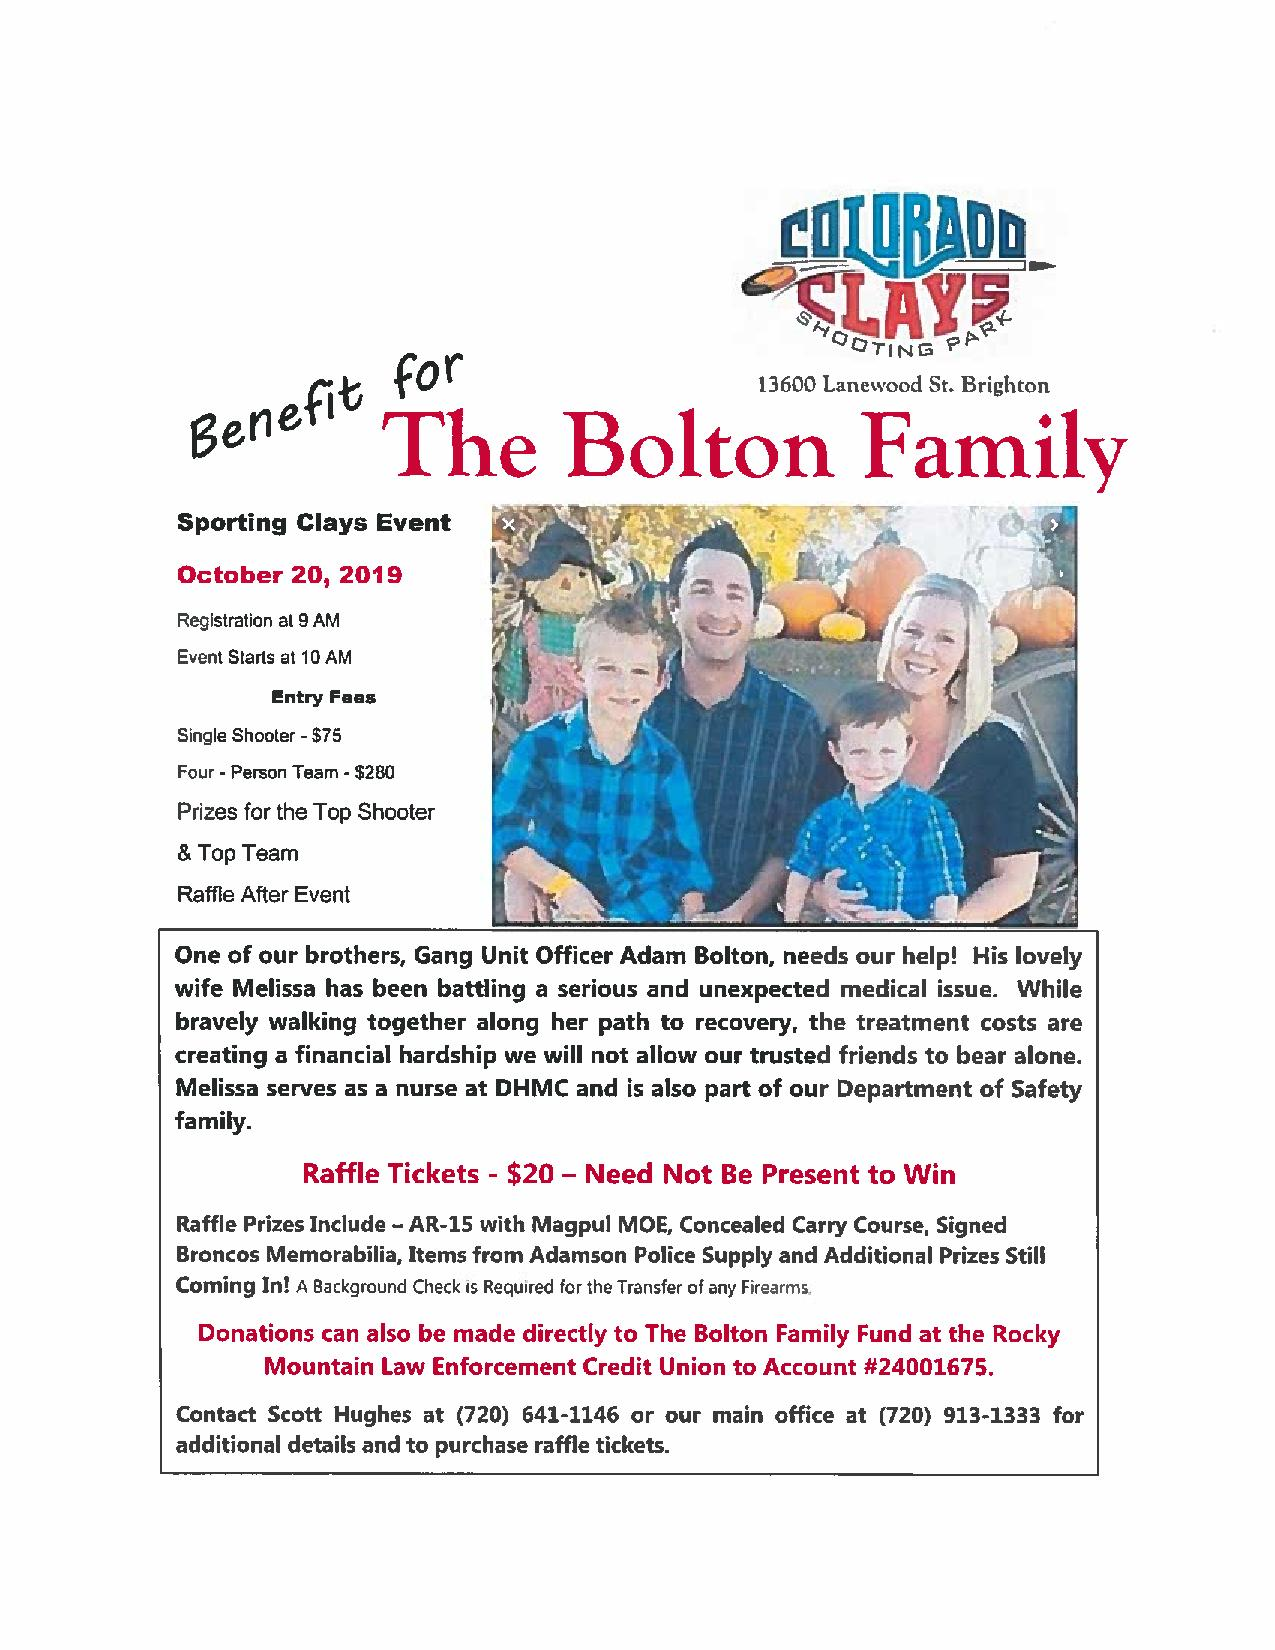 Bolton Family Sporting Clays Fundraiser